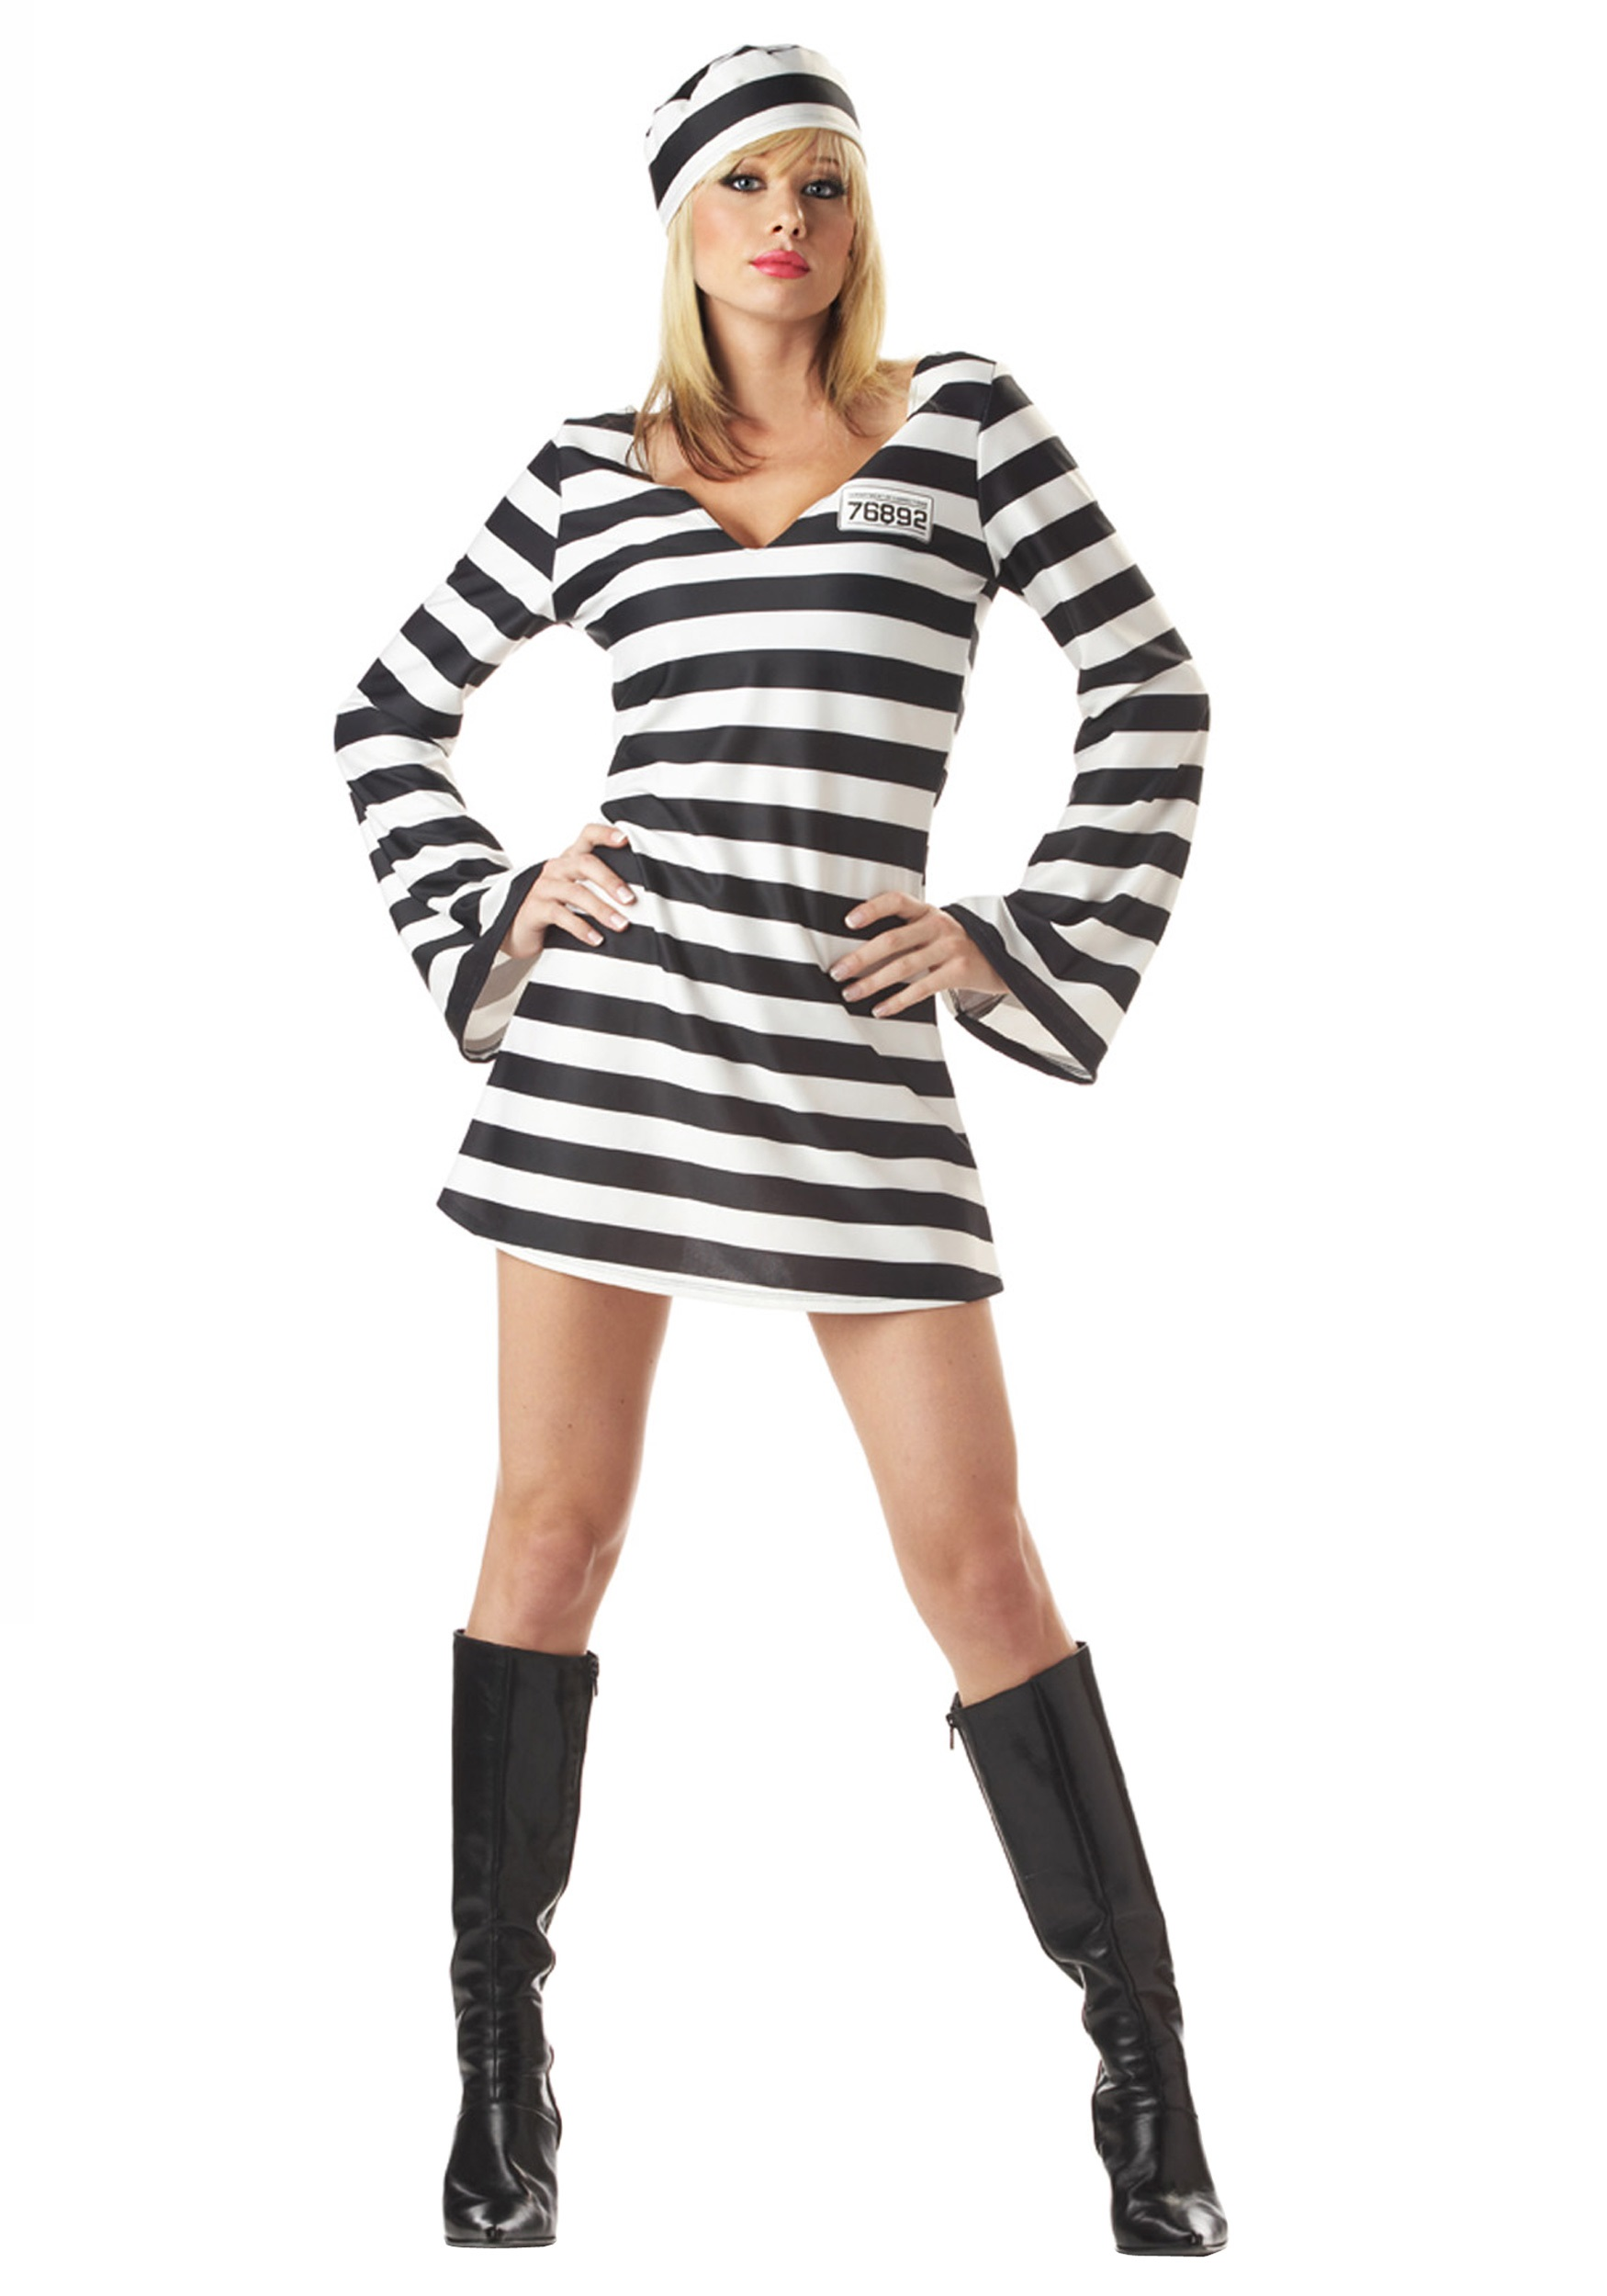 Womenu0027s Inmate Prisoner Costume  sc 1 st  Fun.com & Inmate Prisoner Costume for Women